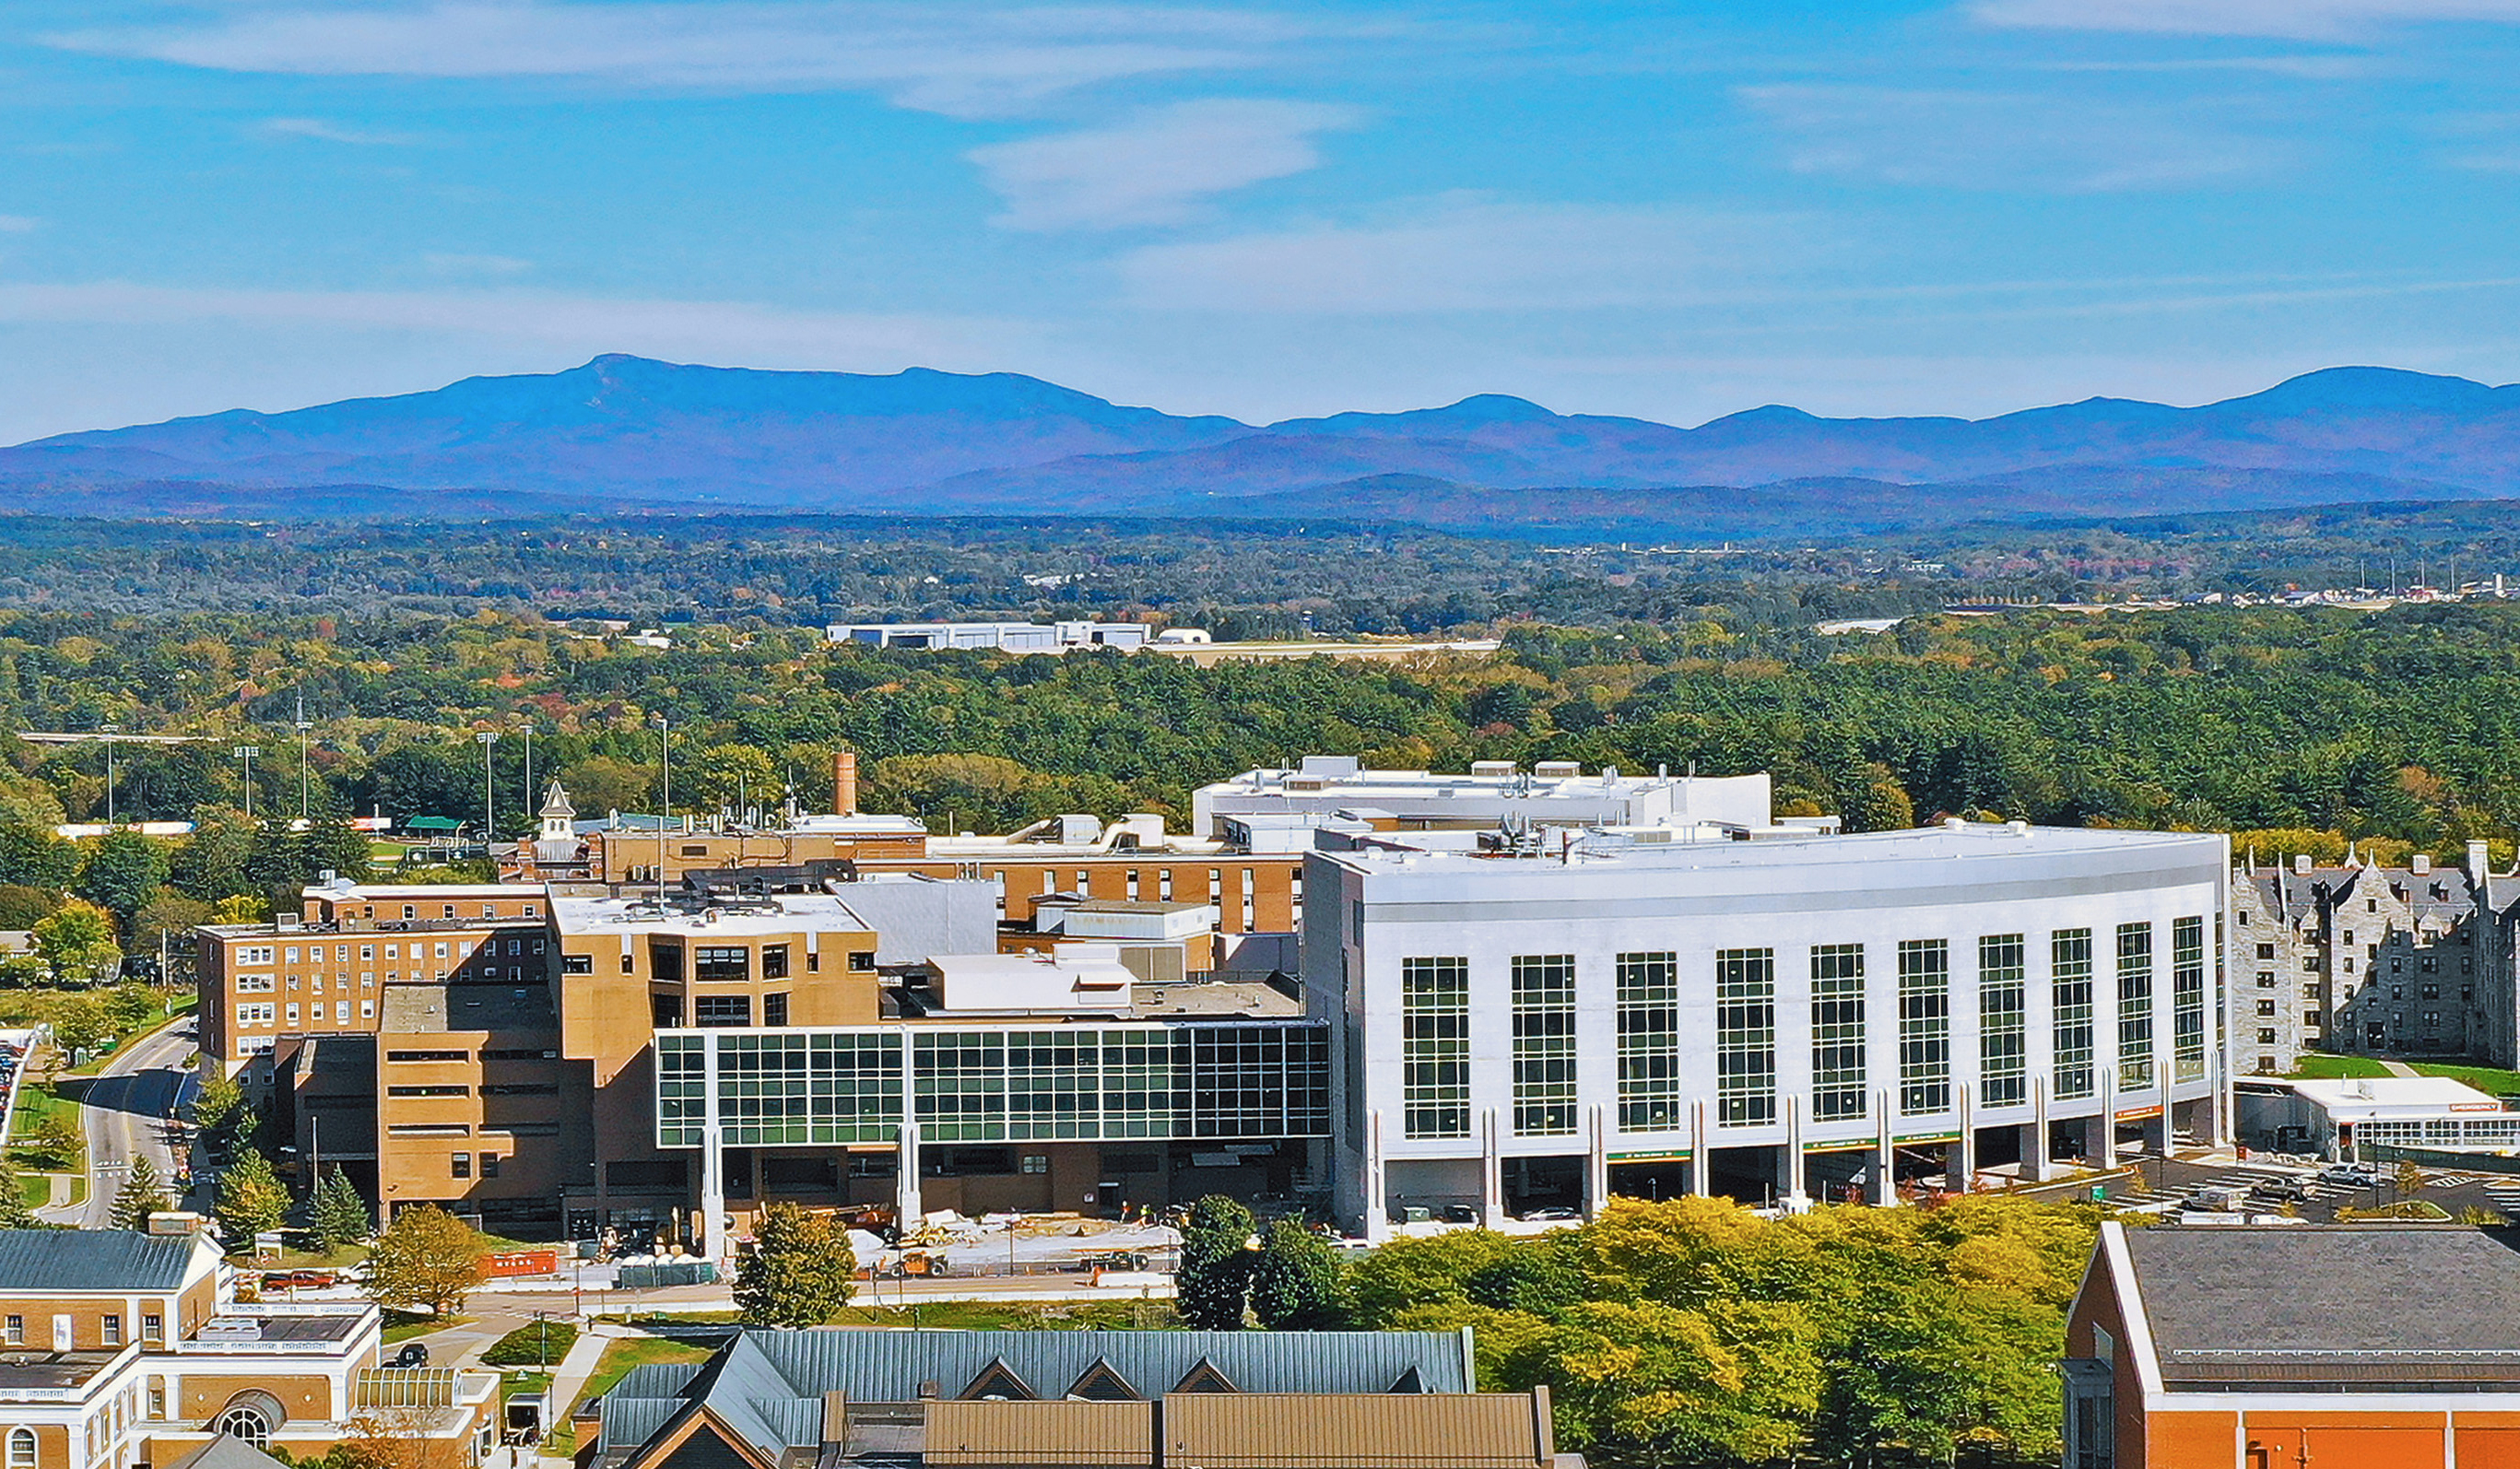 University of Vermont Medical Center aerial shot with views of the mountains and Burlington